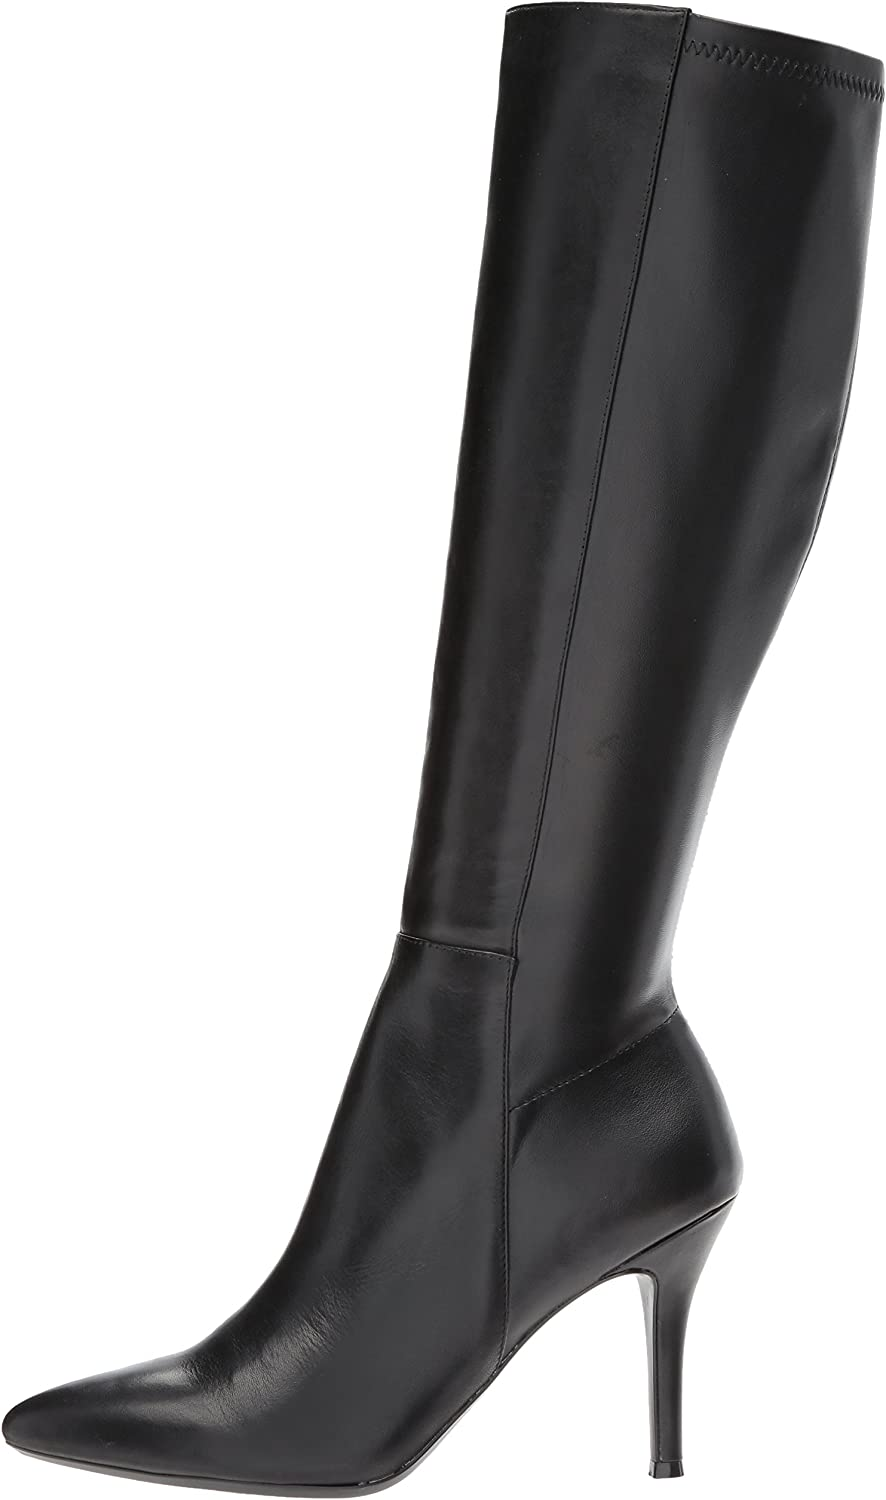 TSDXH108413 AalarDom Womens Frosted Knee-High Solid Pull-On Low-Heels Boots